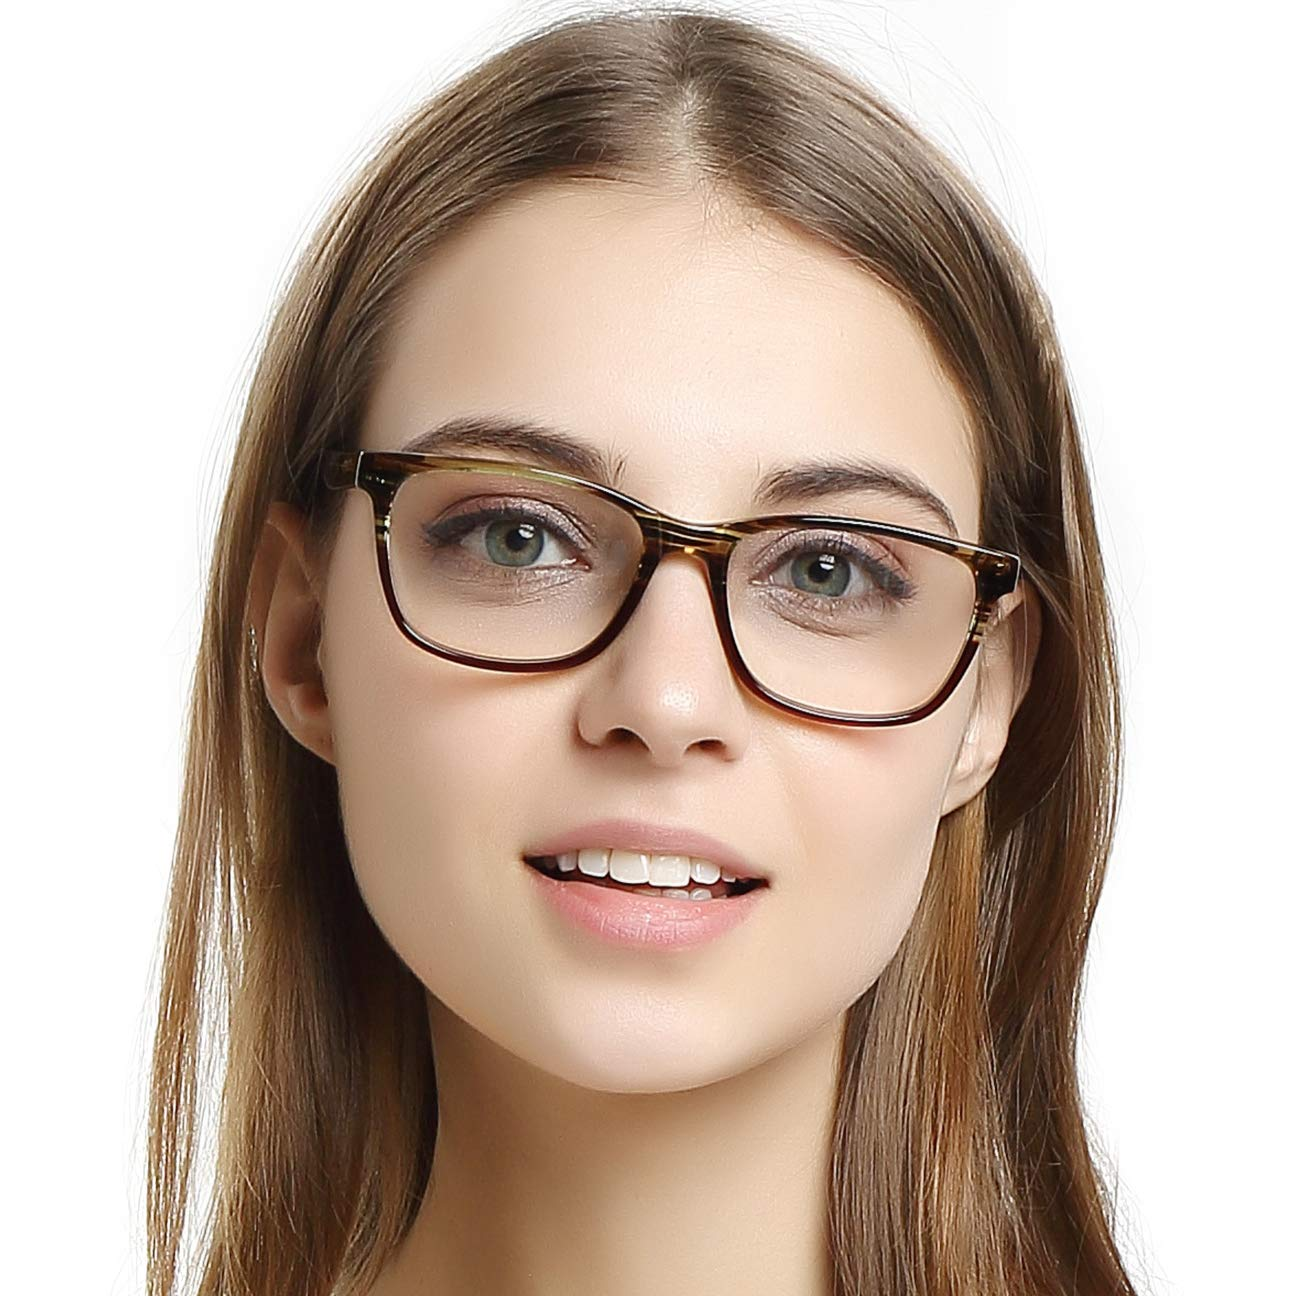 69f559c2a Amazon.com: OCCI CHIARI Womens Fashion Non-Prescription Acetate Eyewear  Frames with Clear Lens(Brown, 53-17-140): Shoes